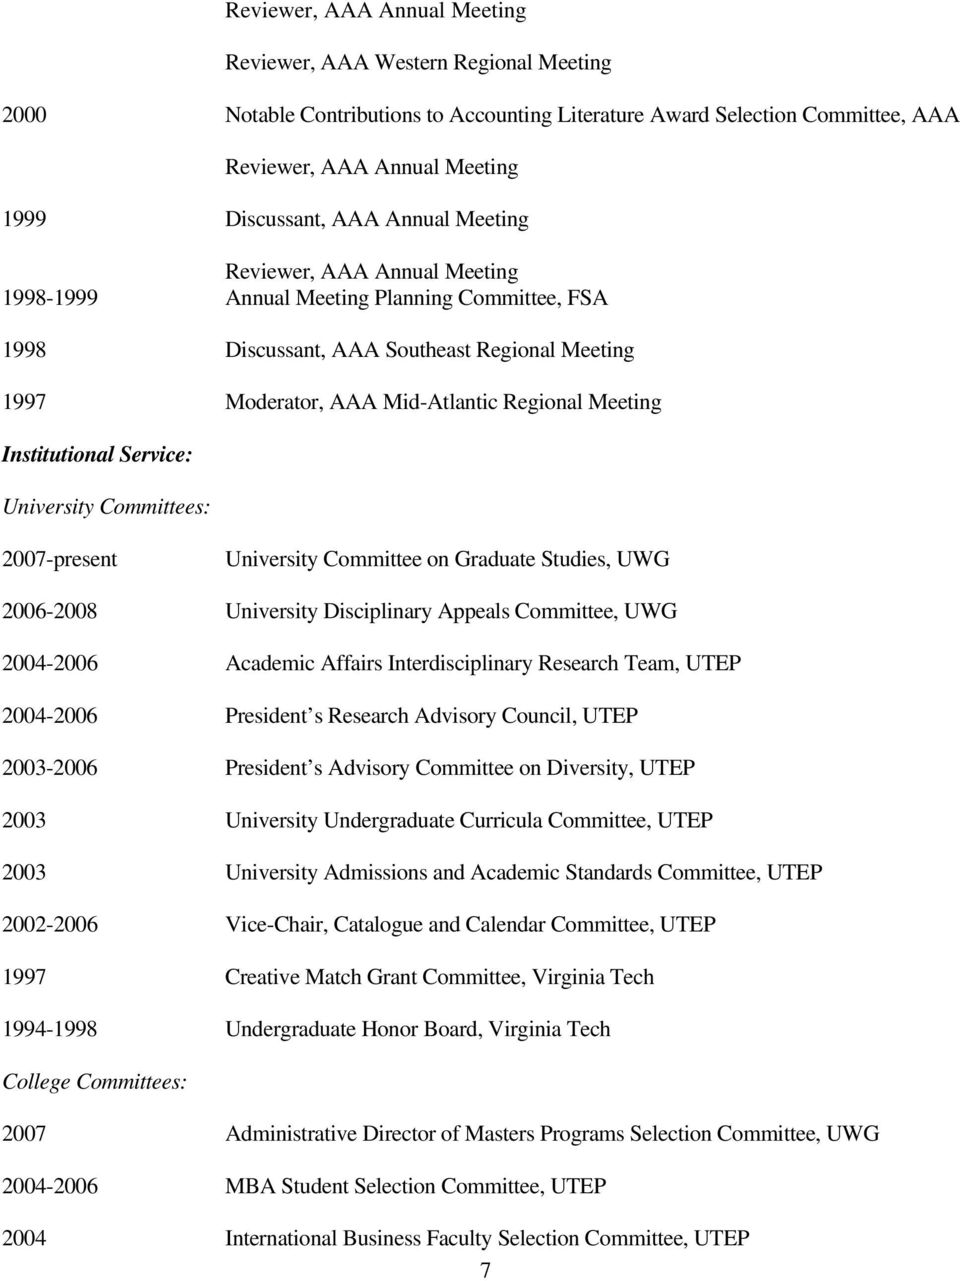 Institutional Service: University Committees: 2007-present University Committee on Graduate Studies, UWG 2006-2008 University Disciplinary Appeals Committee, UWG 2004-2006 Academic Affairs